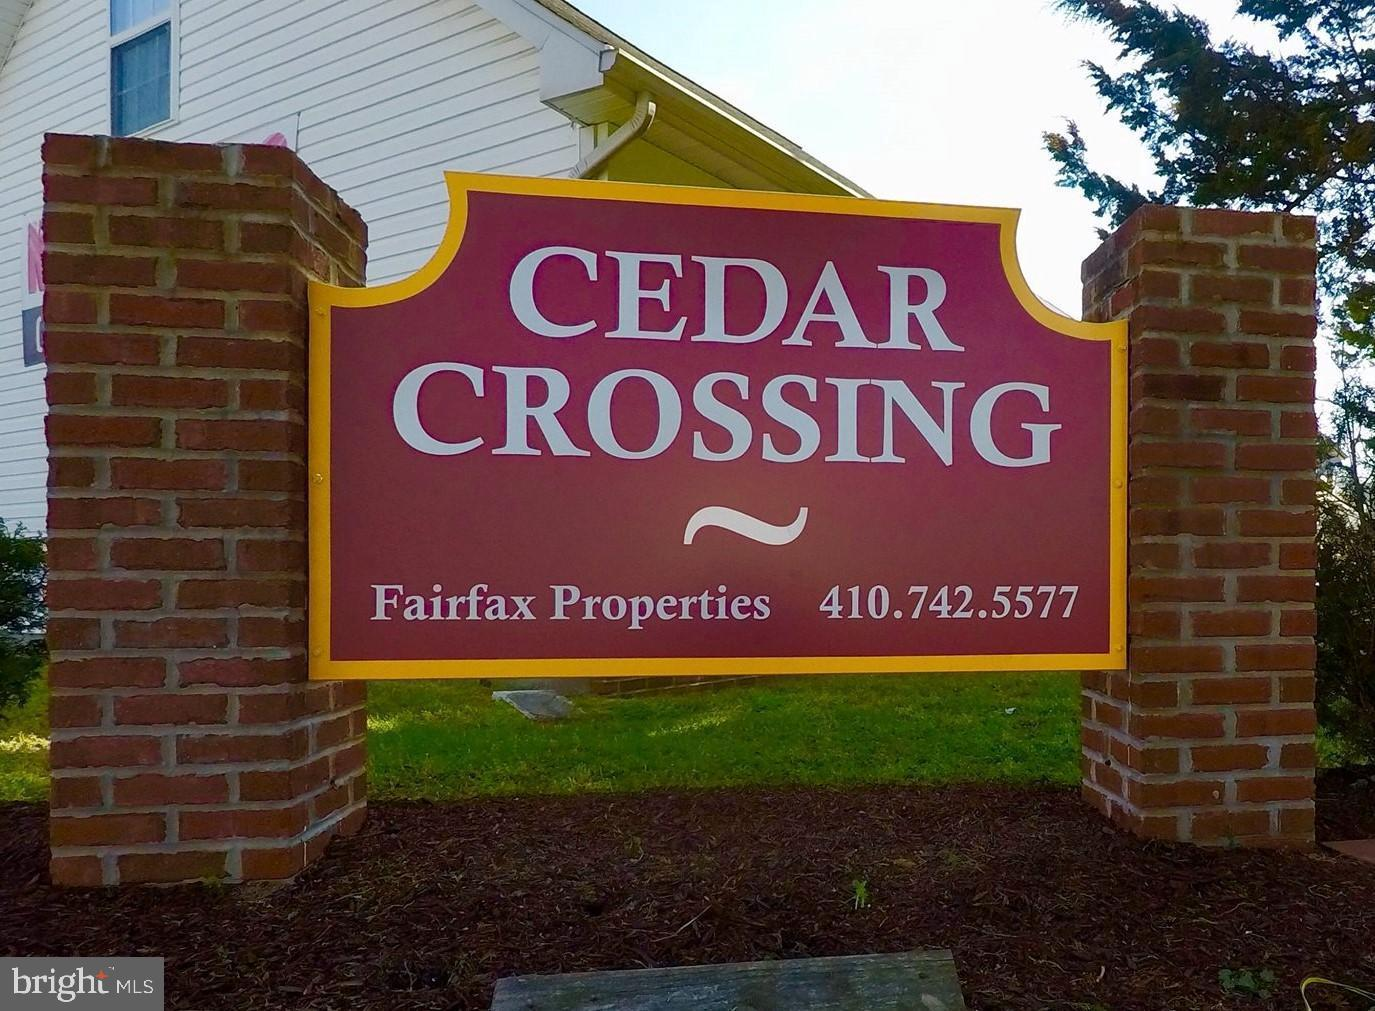 101 CEDAR CROSSING, SALISBURY, Five or More Units,  for sale